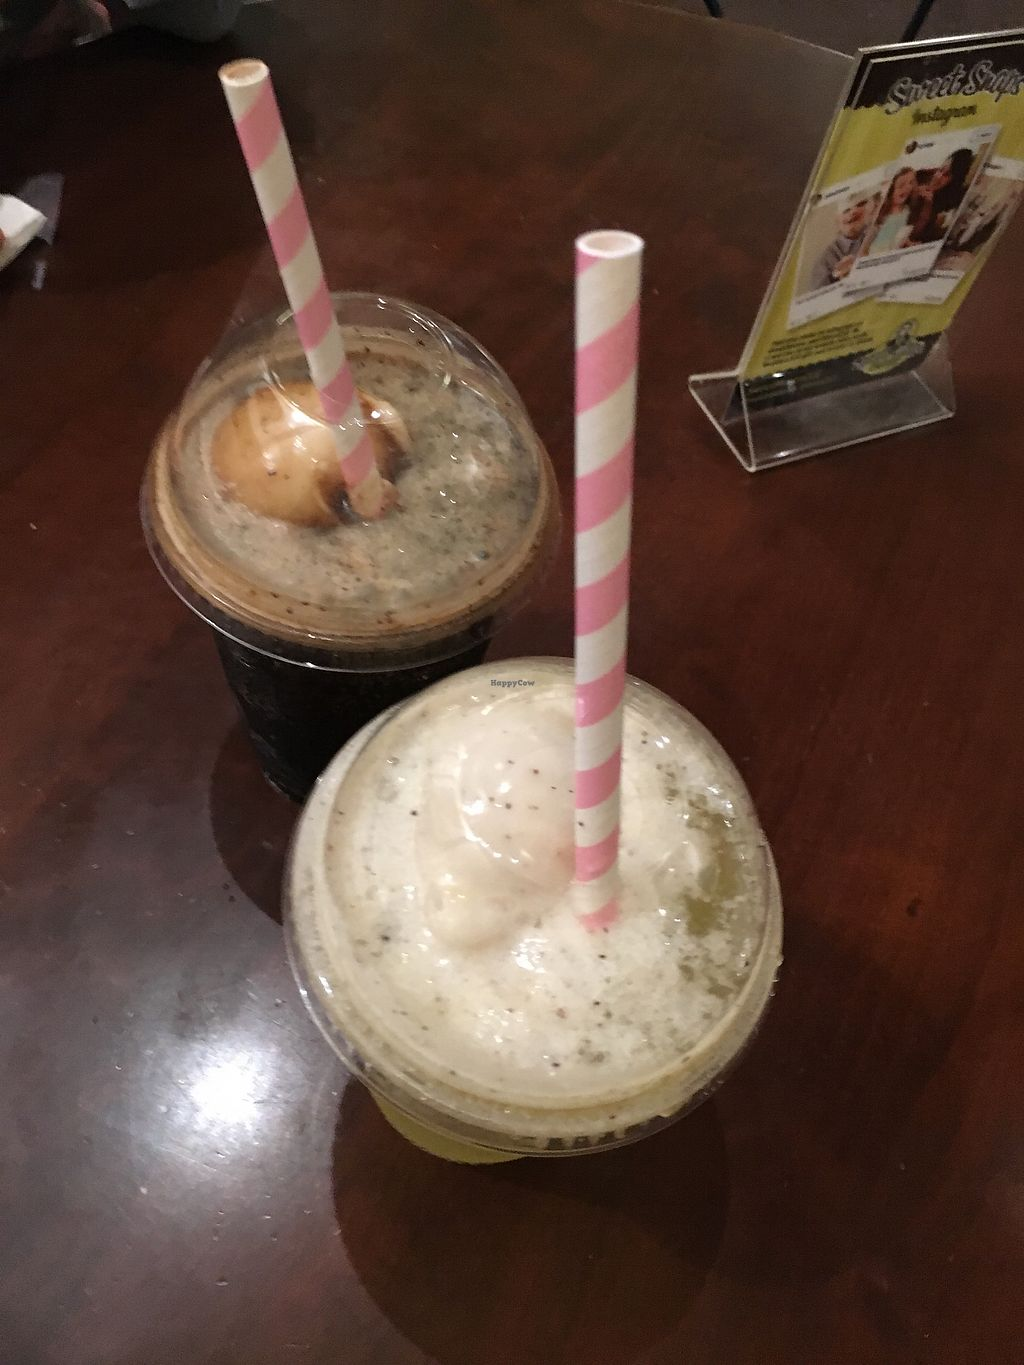 """Photo of Sweet Moses Soda Fountain and Treat Shop  by <a href=""""/members/profile/veganrosebud"""">veganrosebud</a> <br/>Root beer float and passion fruit ice cream soda to-go <br/> July 18, 2017  - <a href='/contact/abuse/image/50645/281645'>Report</a>"""